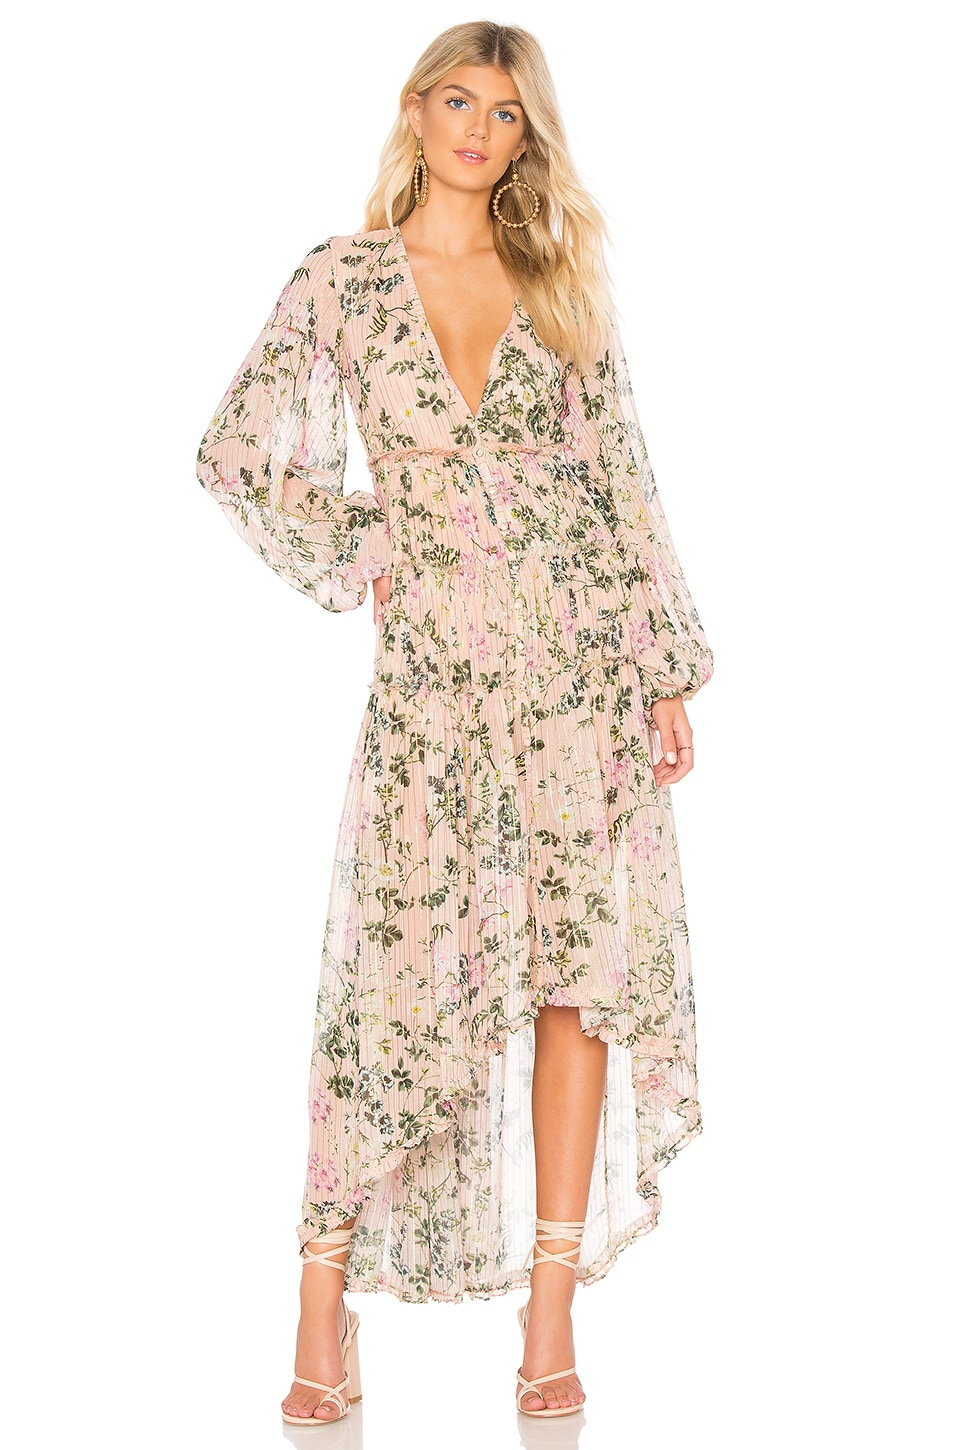 ROCOCO SAND x REVOLVE Flora Maxi Dress in Nude Floral